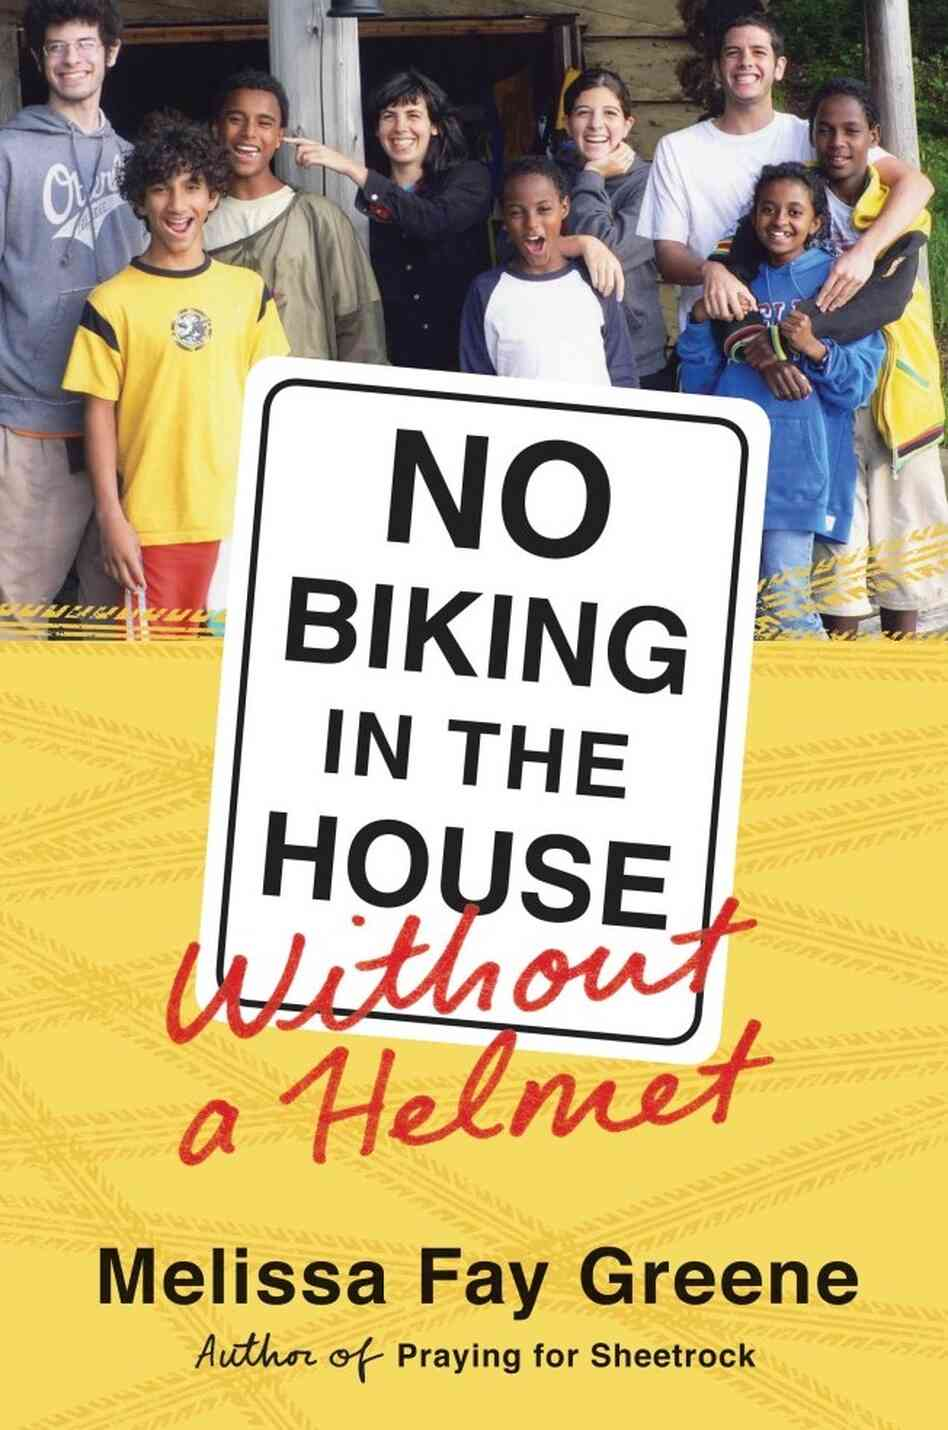 No Biking In The House Without A Helmet by Melissa Fay Greene